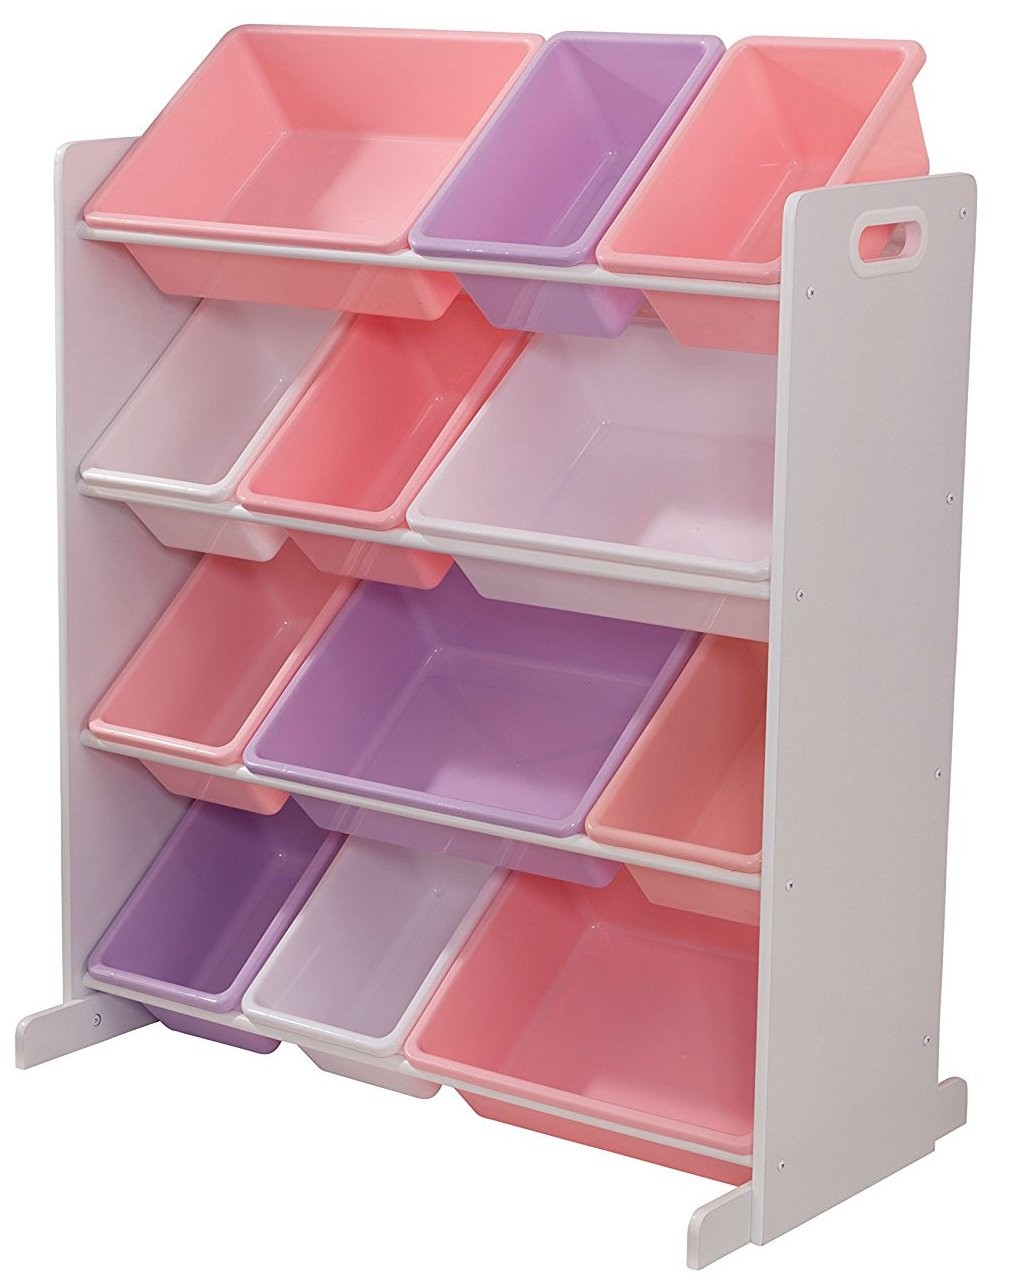 meuble de rangement 12 casiers couleurs pastels kidkraft 15450. Black Bedroom Furniture Sets. Home Design Ideas